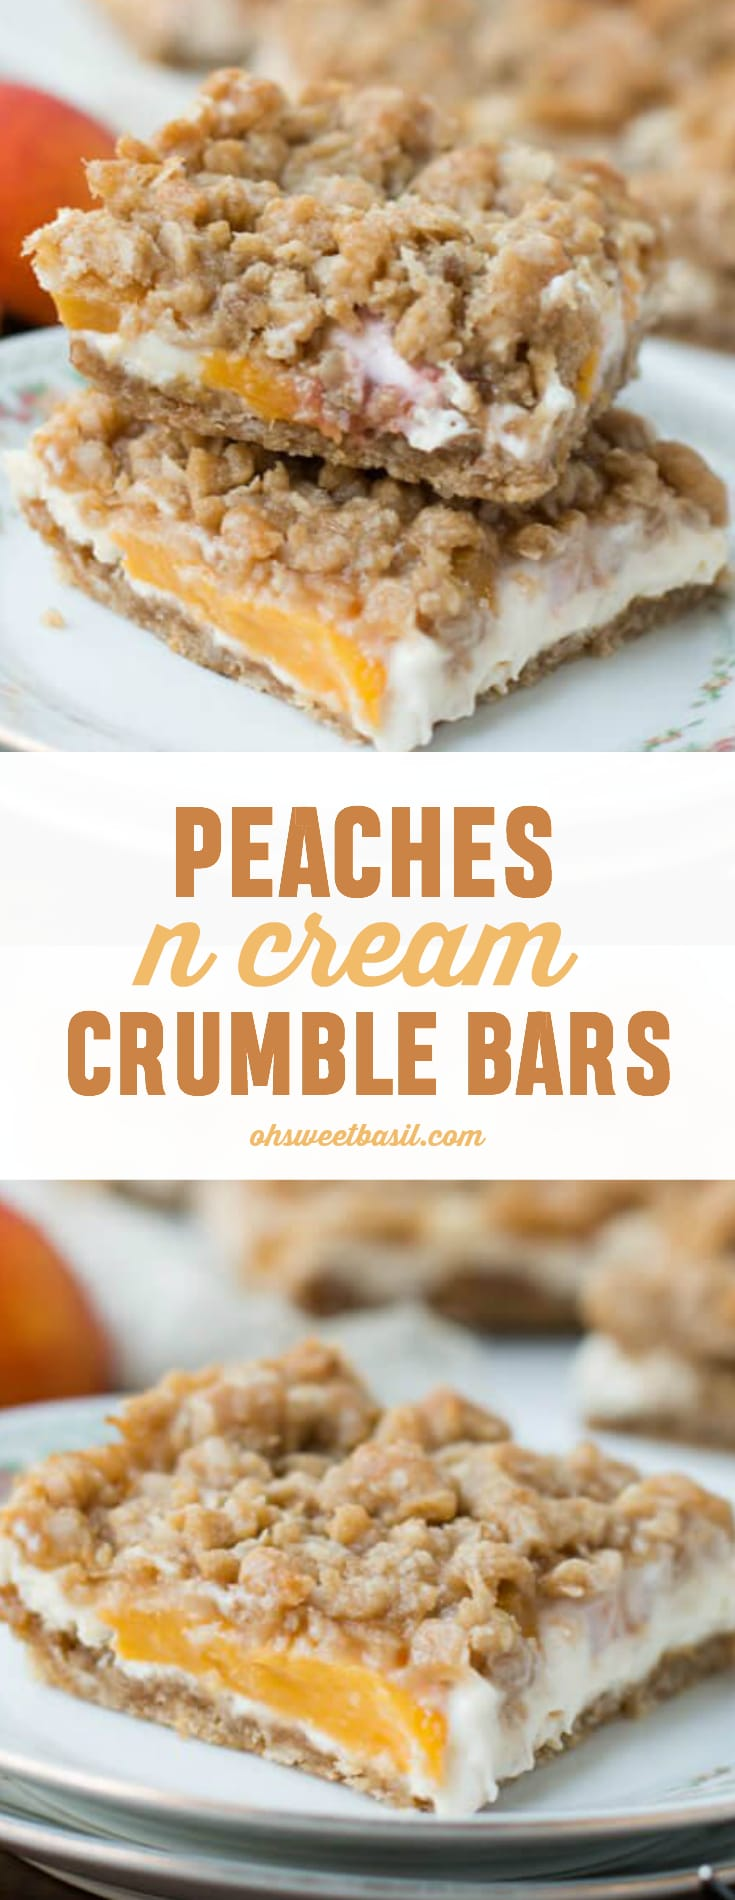 Peaches N Cream Crumble Bars with a creamy filling and brown sugar oat on top